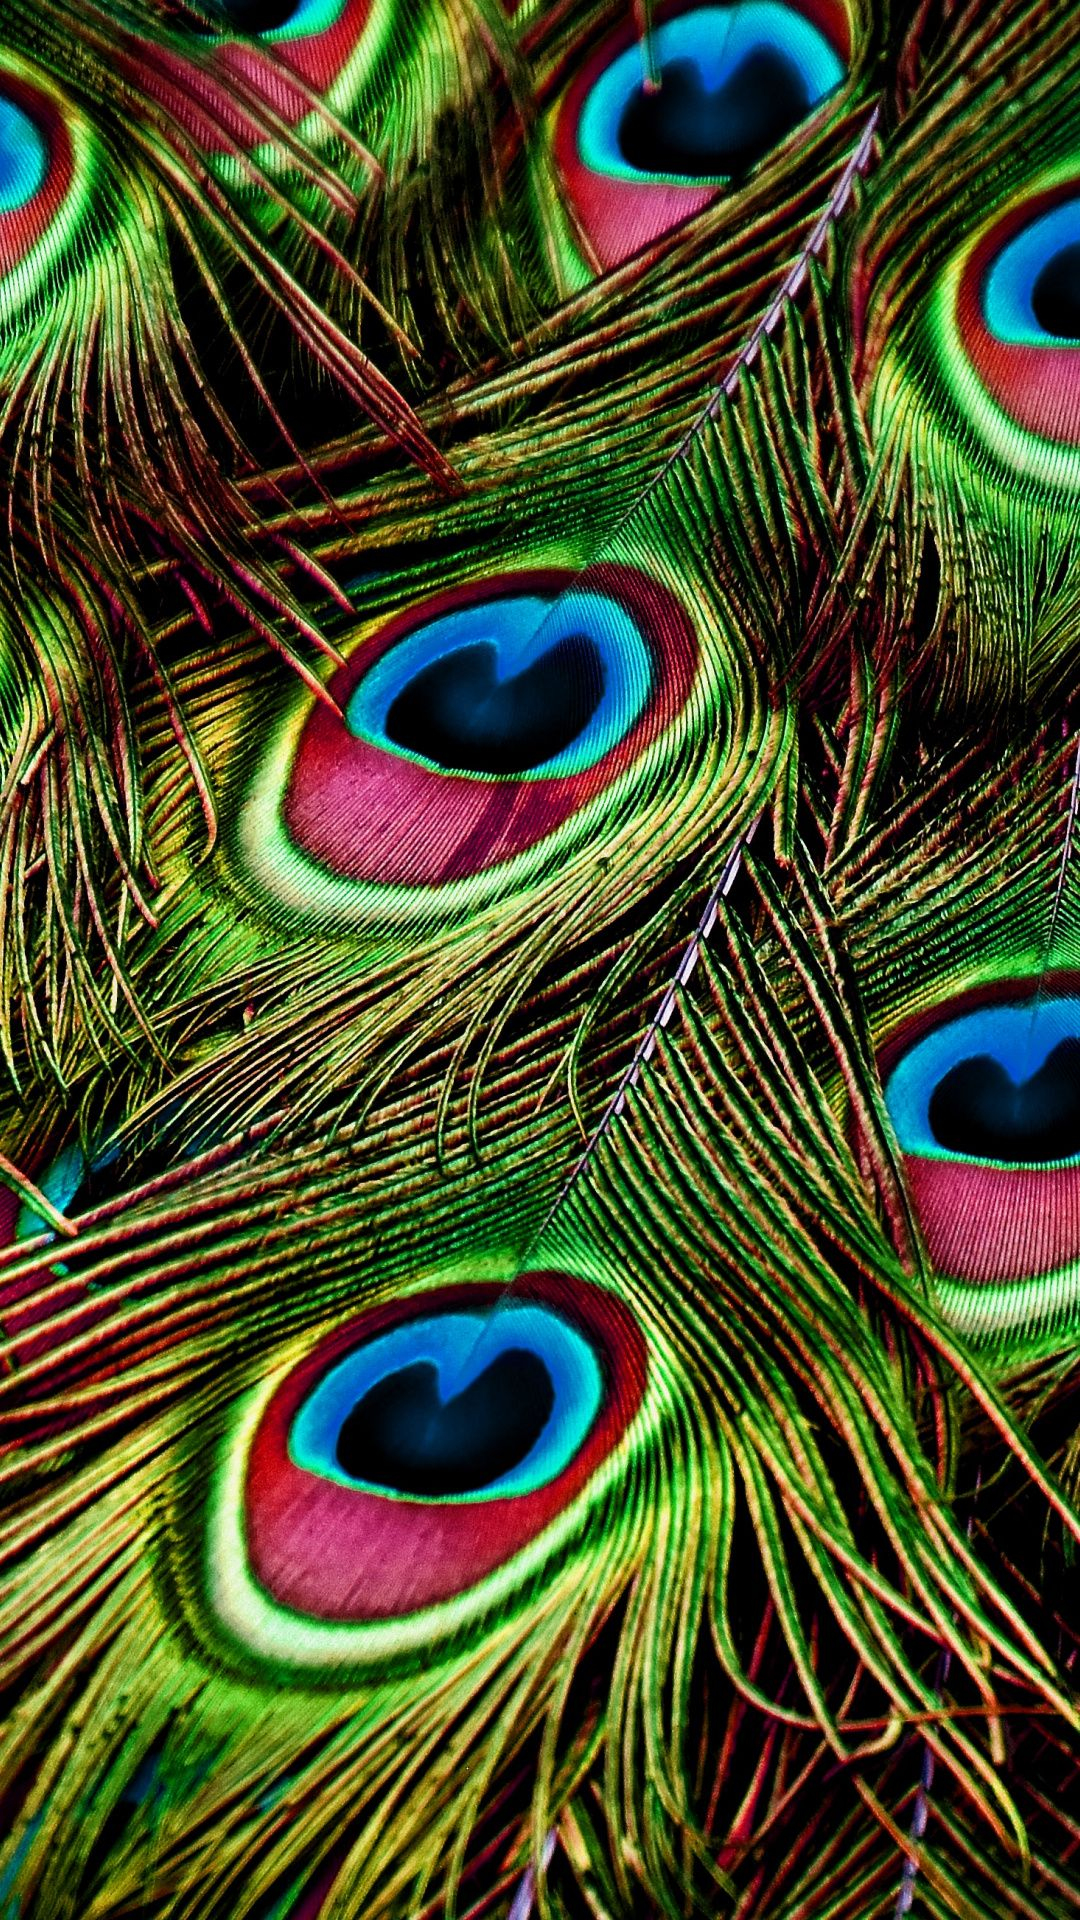 Peacock Feathers Close Up Colorful Wallpaper Feather Wallpaper Peacock Wallpaper Feather Wallpaper Iphone